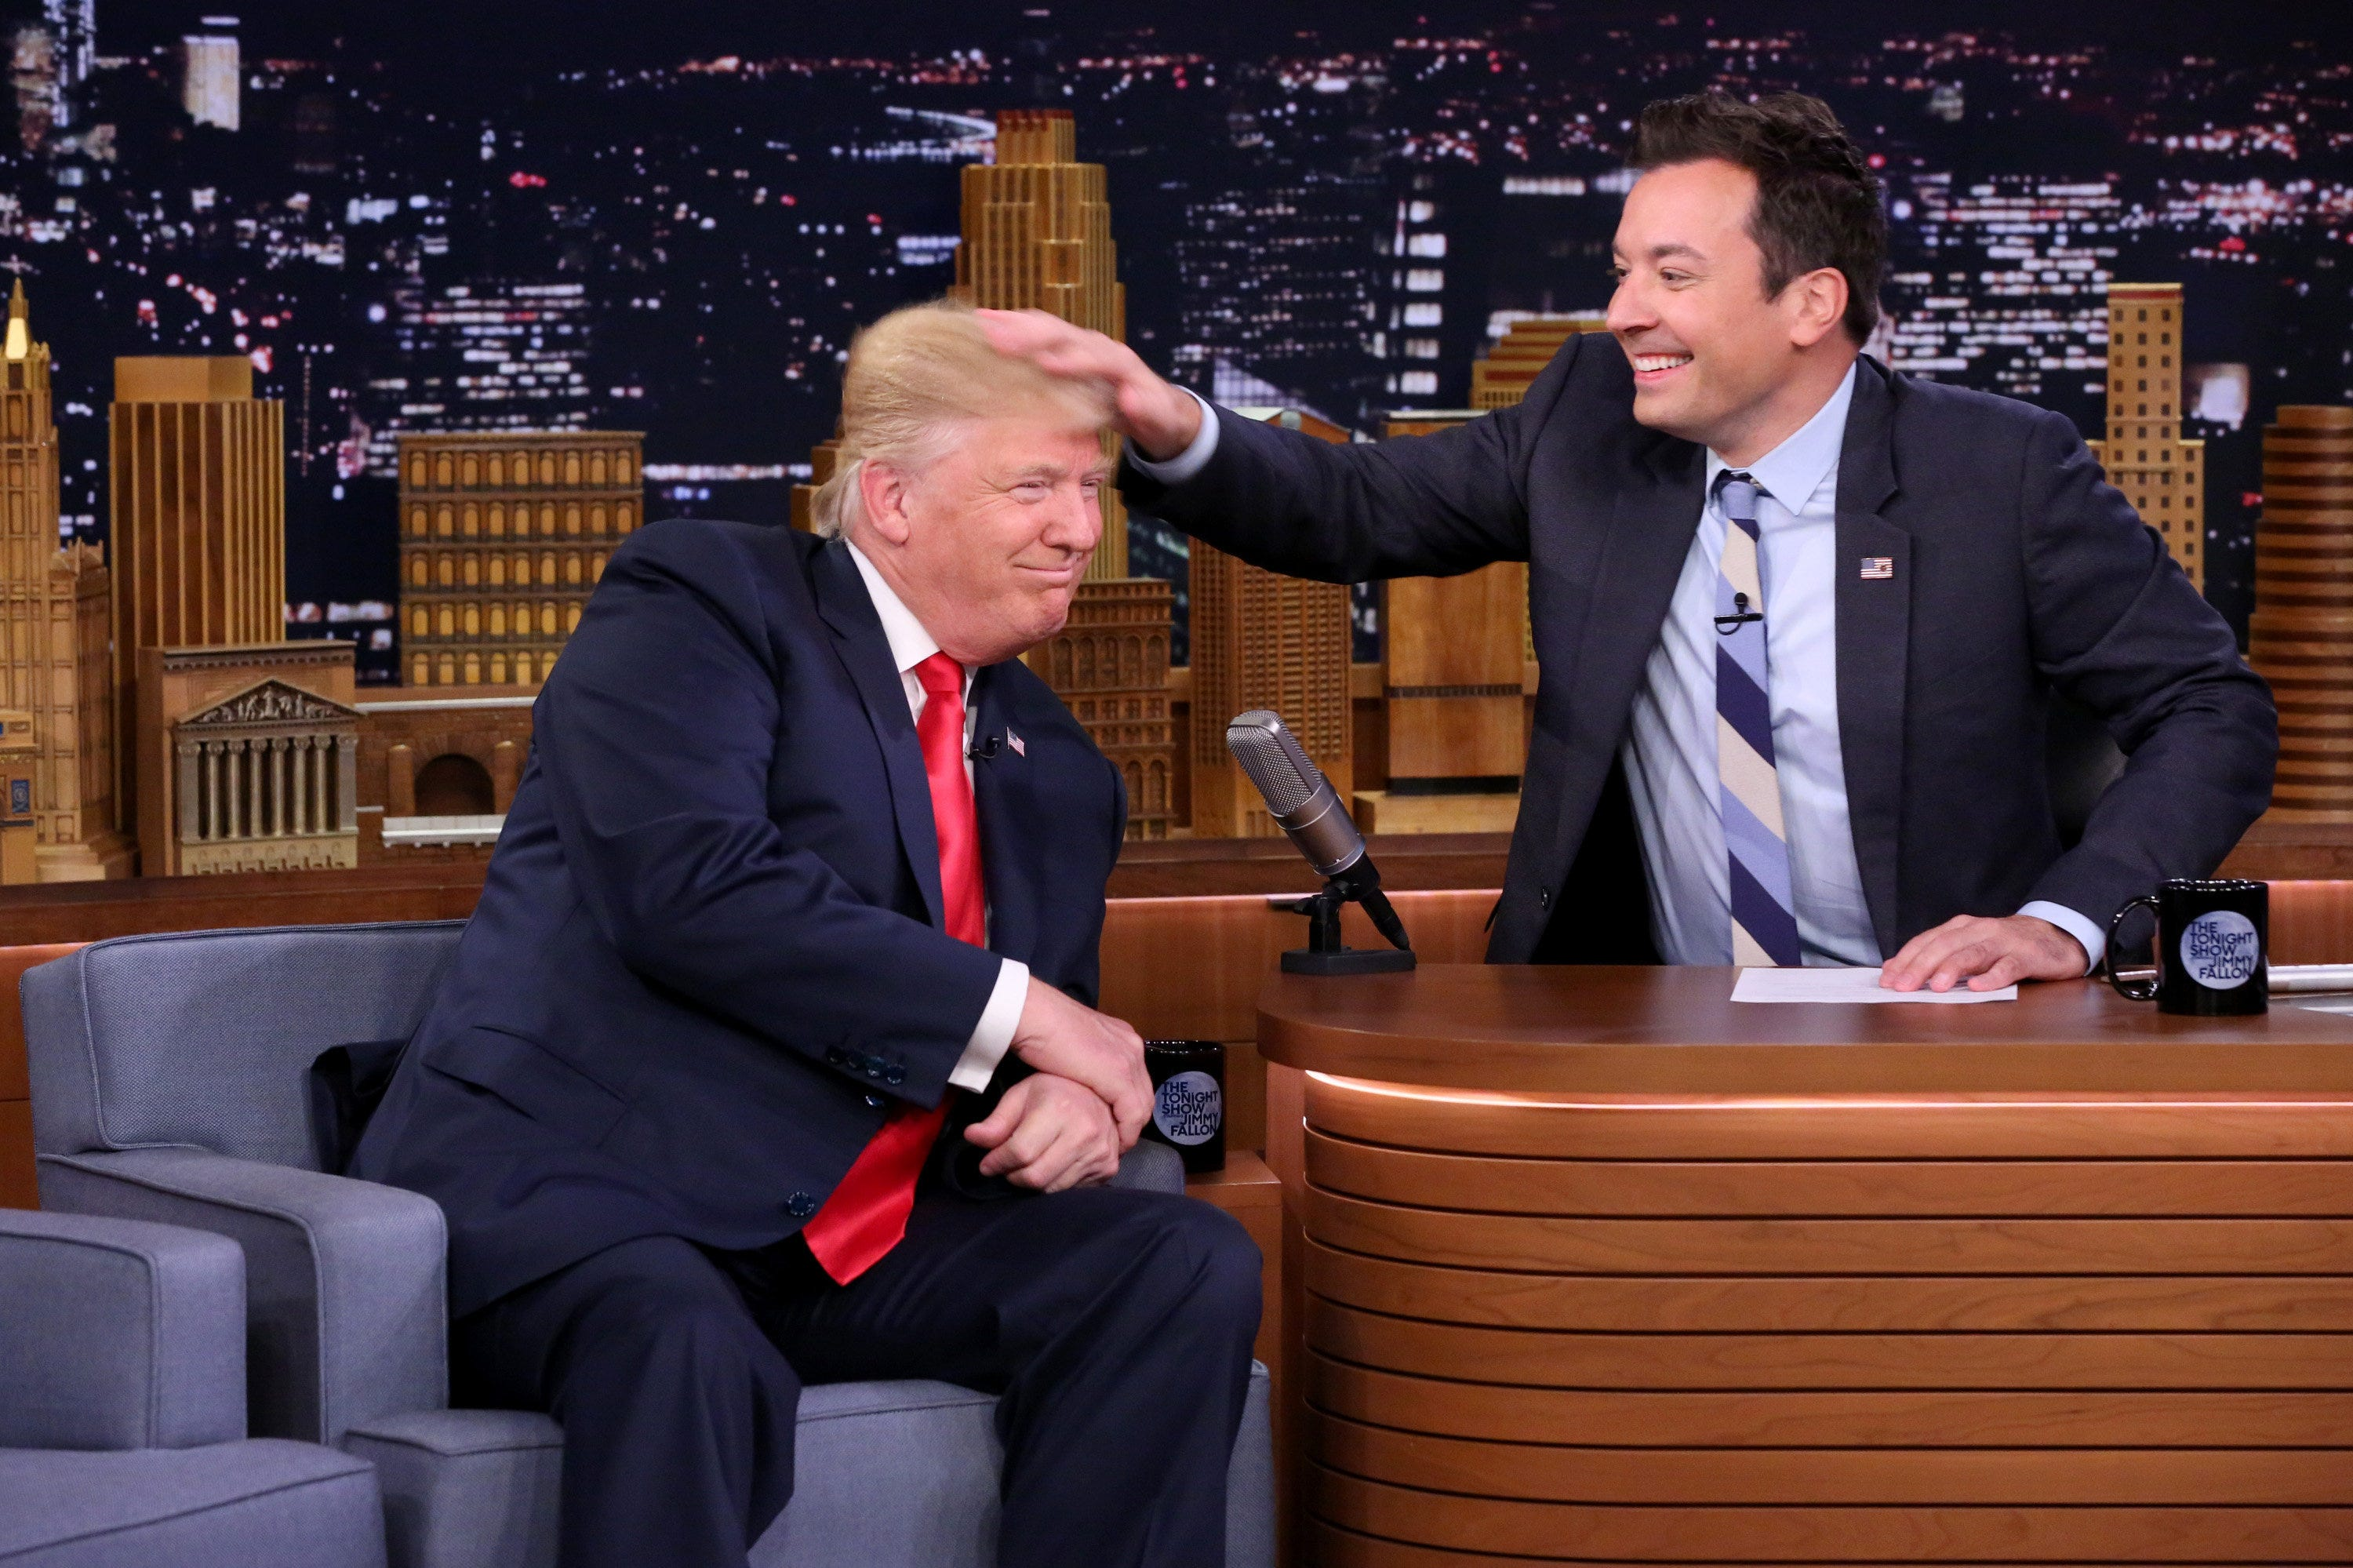 Trump tells Fallon 'be a man'; 'Tonight Show' host responds by donating to refugees